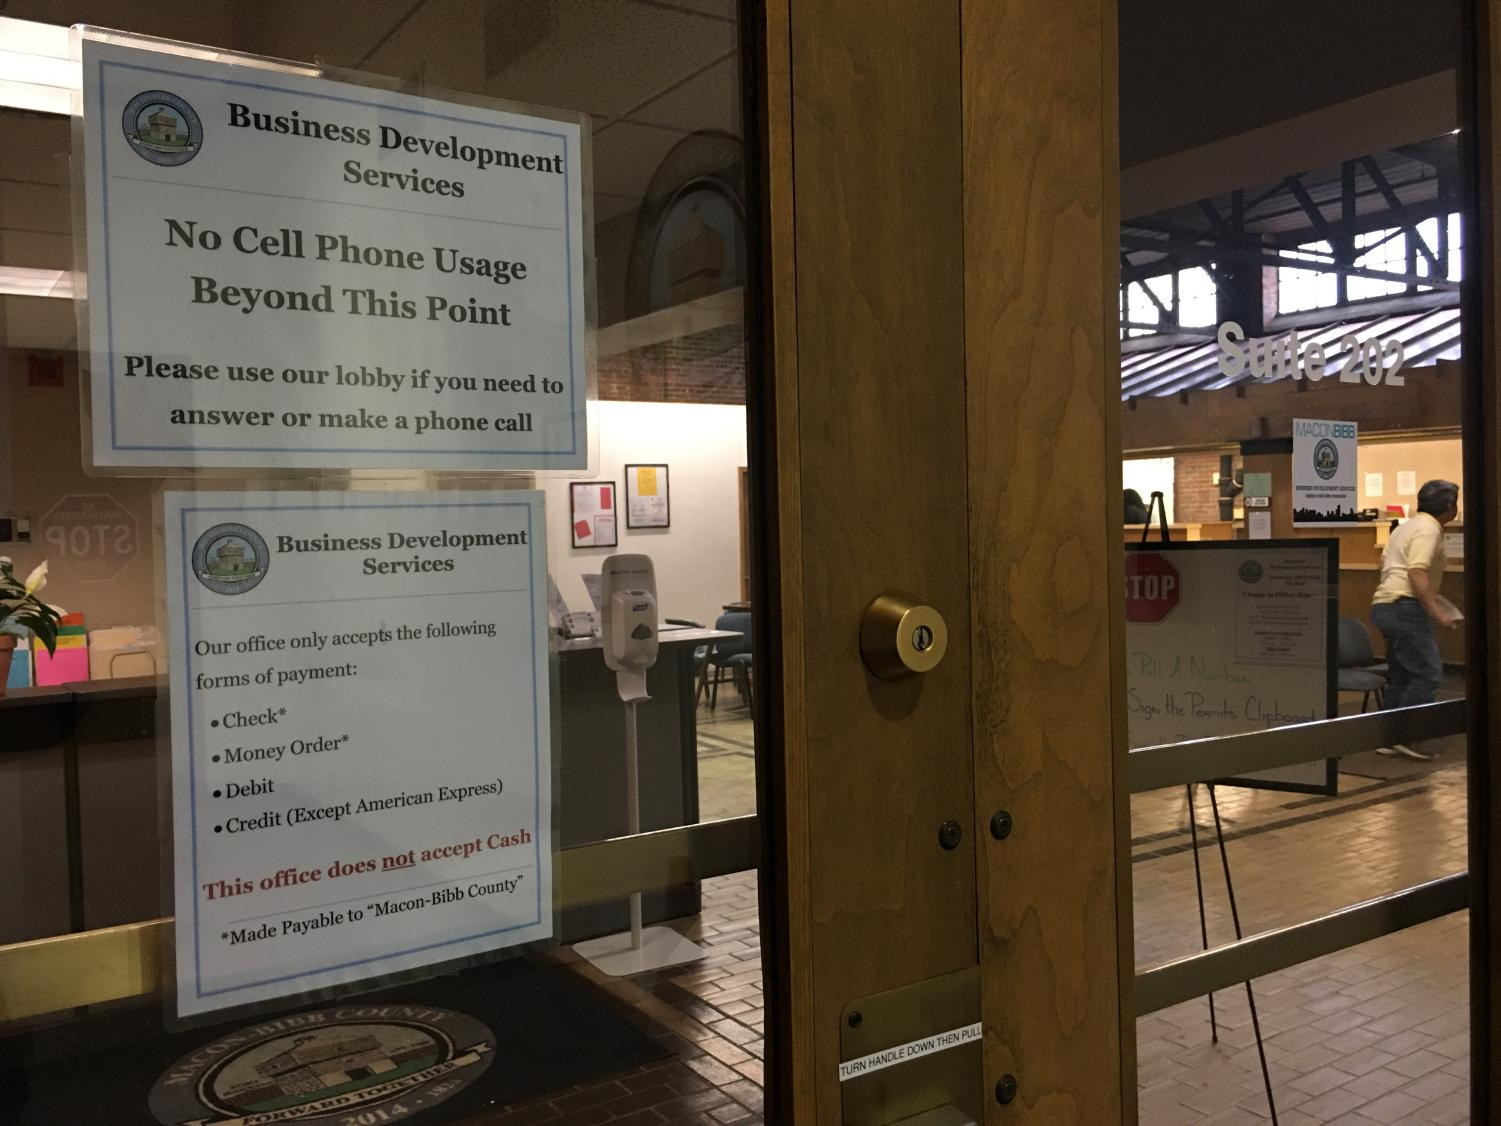 Macon-Bibb County is considering splitting its Business Development Services Department and outsourcing inspections and permits to SAFEbuilt.